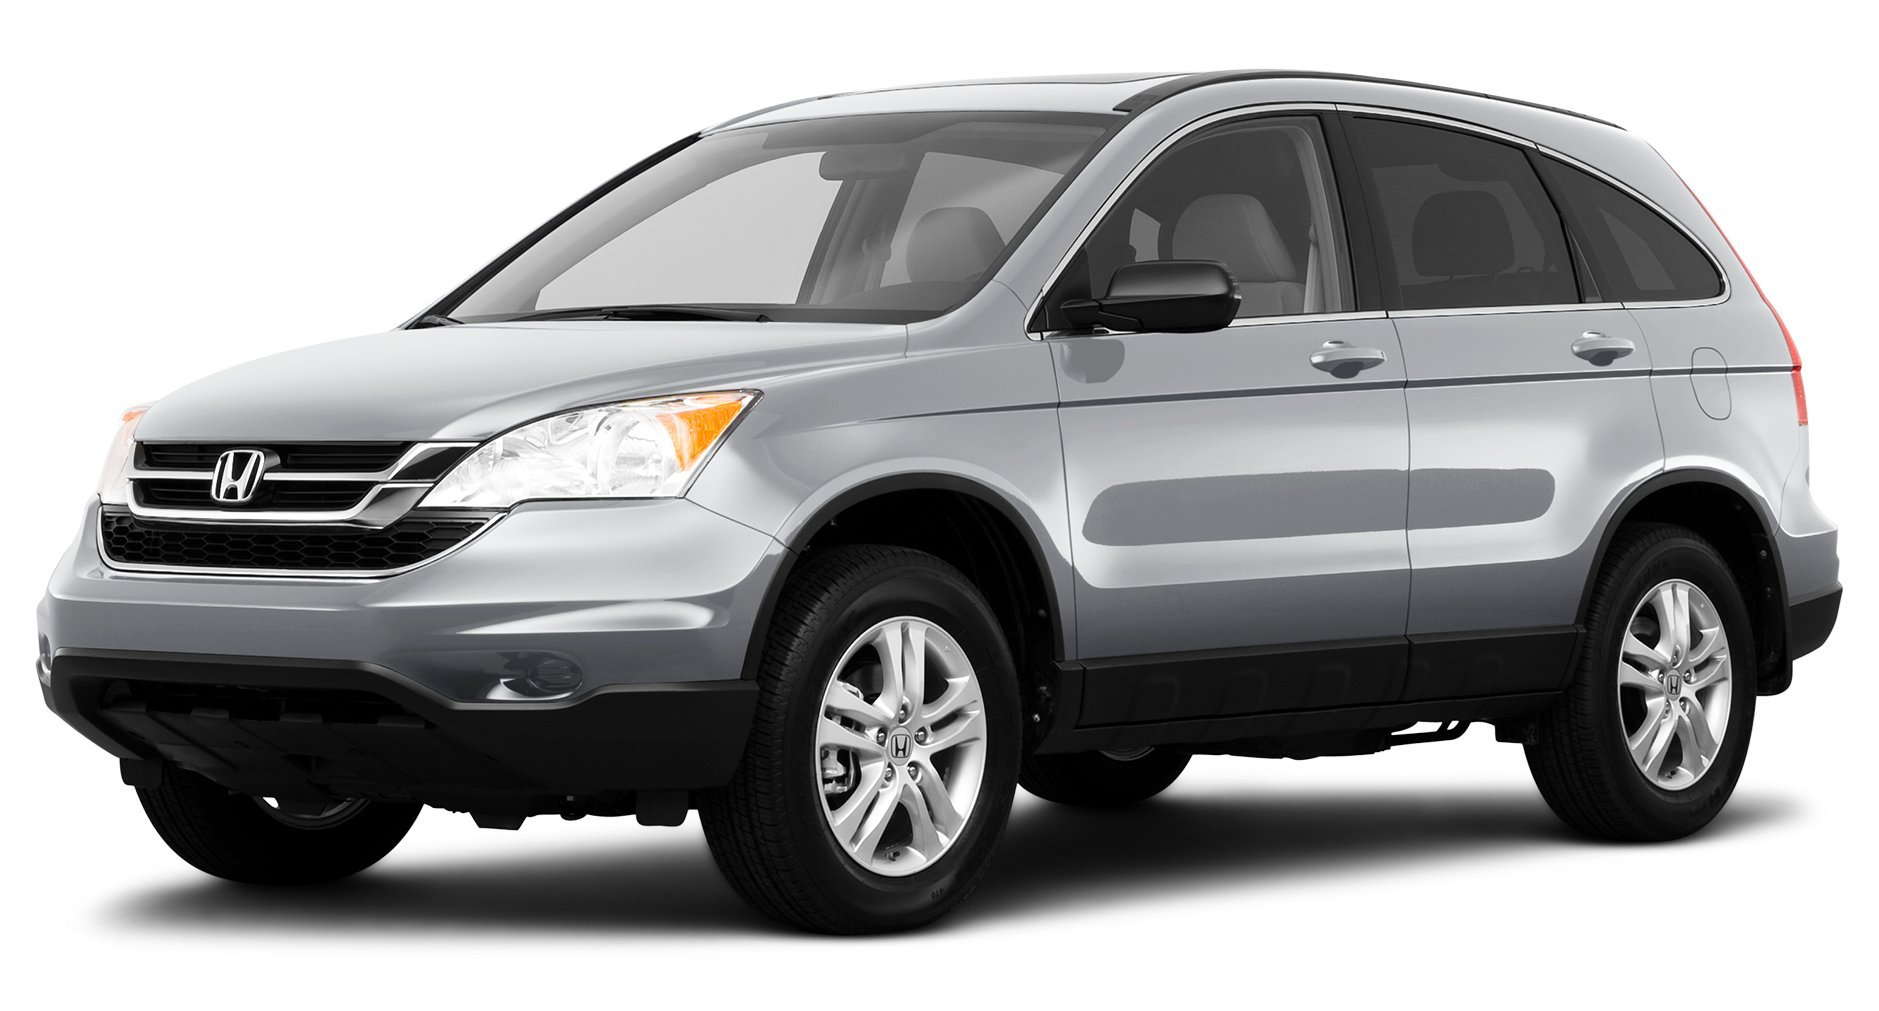 71hstAqHvGL amazon com 2010 honda cr v reviews, images, and specs vehicles 2014 Honda CR-V at crackthecode.co